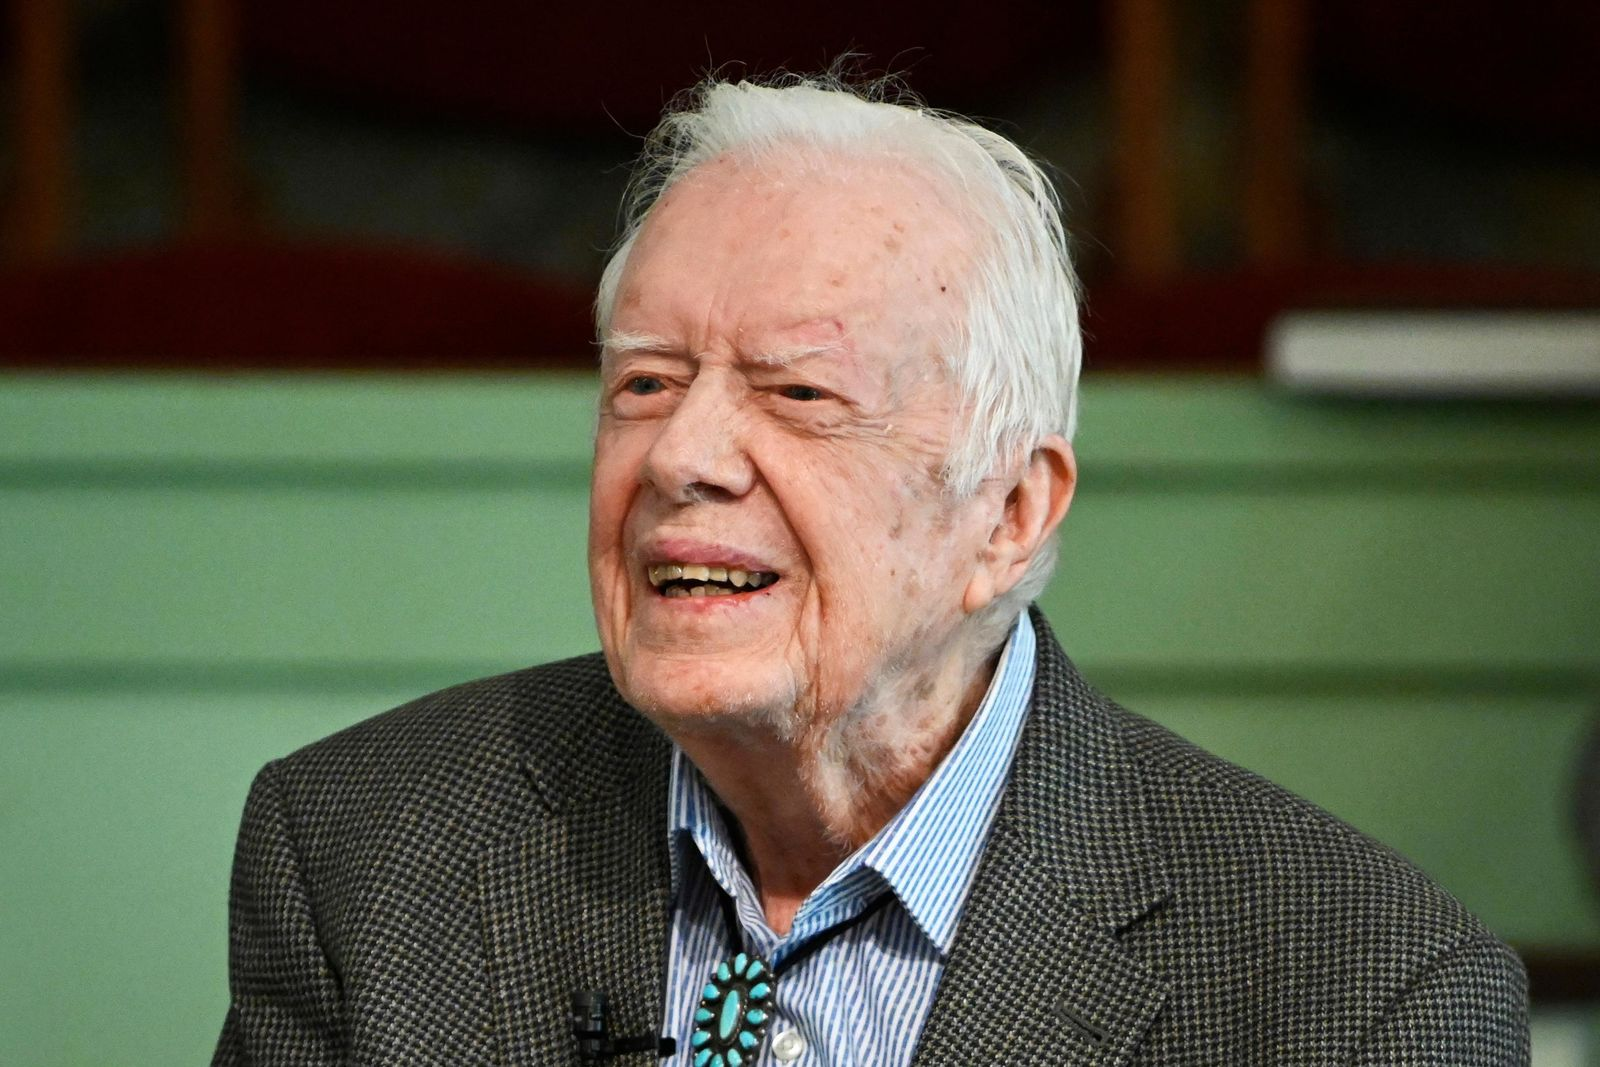 FILE - In this Nov. 3, 2019 file photo, former President Jimmy Carter teaches Sunday school at Maranatha Baptist Church in Plains, Ga. Deanna Congileo, a spokeswoman for The Carter Center, said Monday, Dec. 2, 2019 in a statement that the 95-year-old former president was admitted to Phoebe Sumter Medical Center in Americus over the weekend.  (AP Photo/John Amis, File)